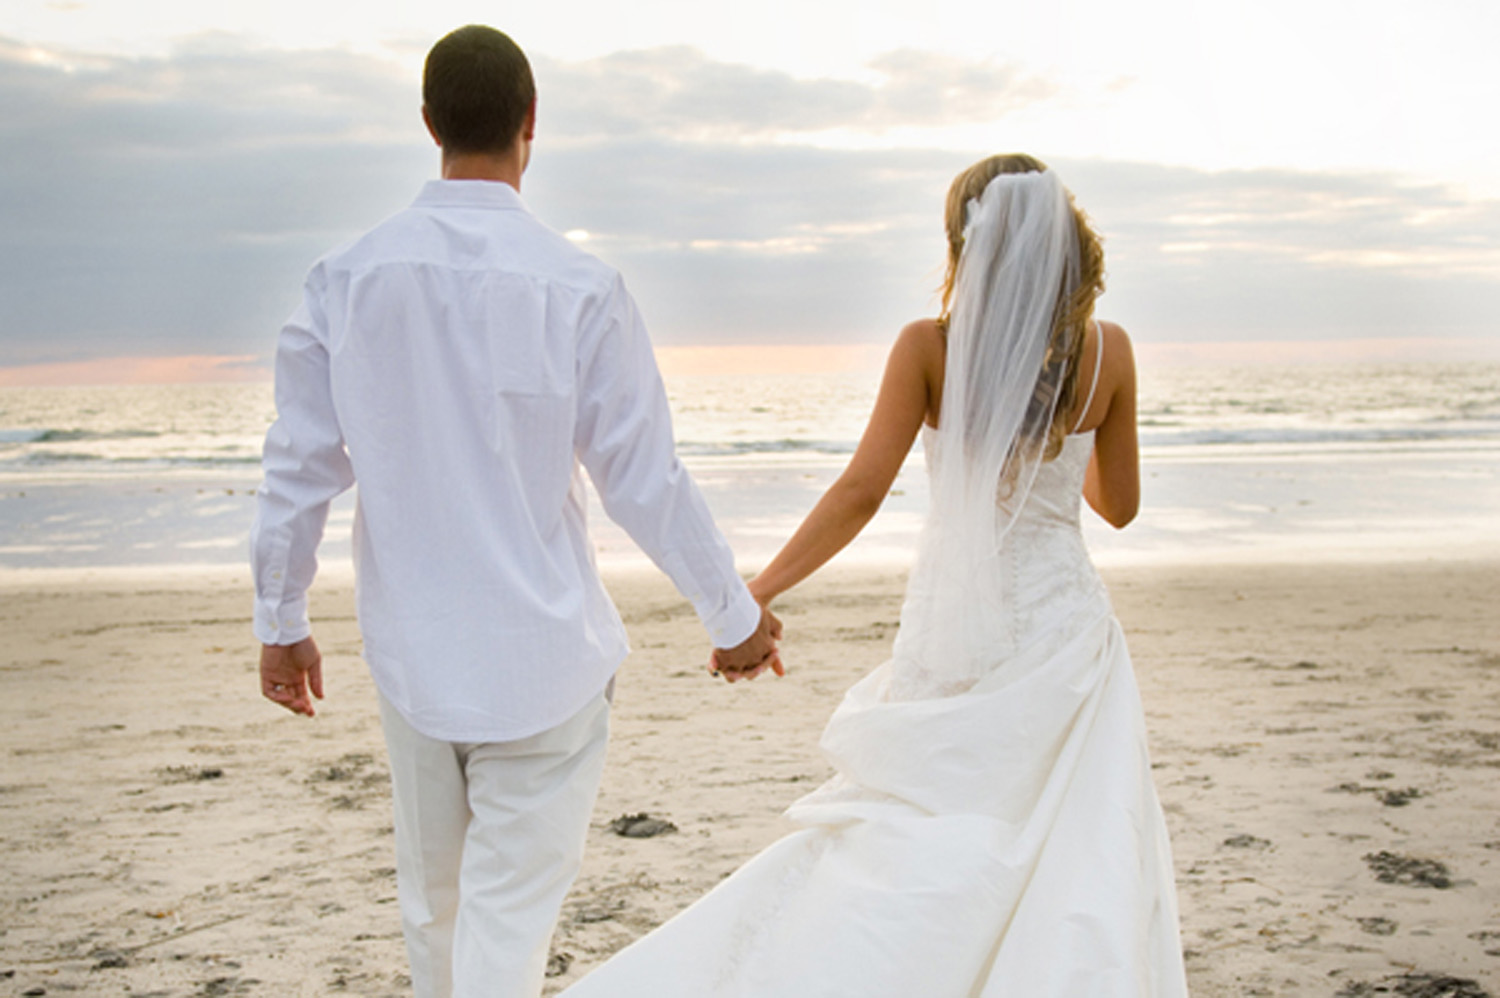 Many Wedding Worthy Resorts Offer Free Planning Help To S Whether The Event Is For Two Or 200 And An Abundance Of Packages Keep Things Simple While